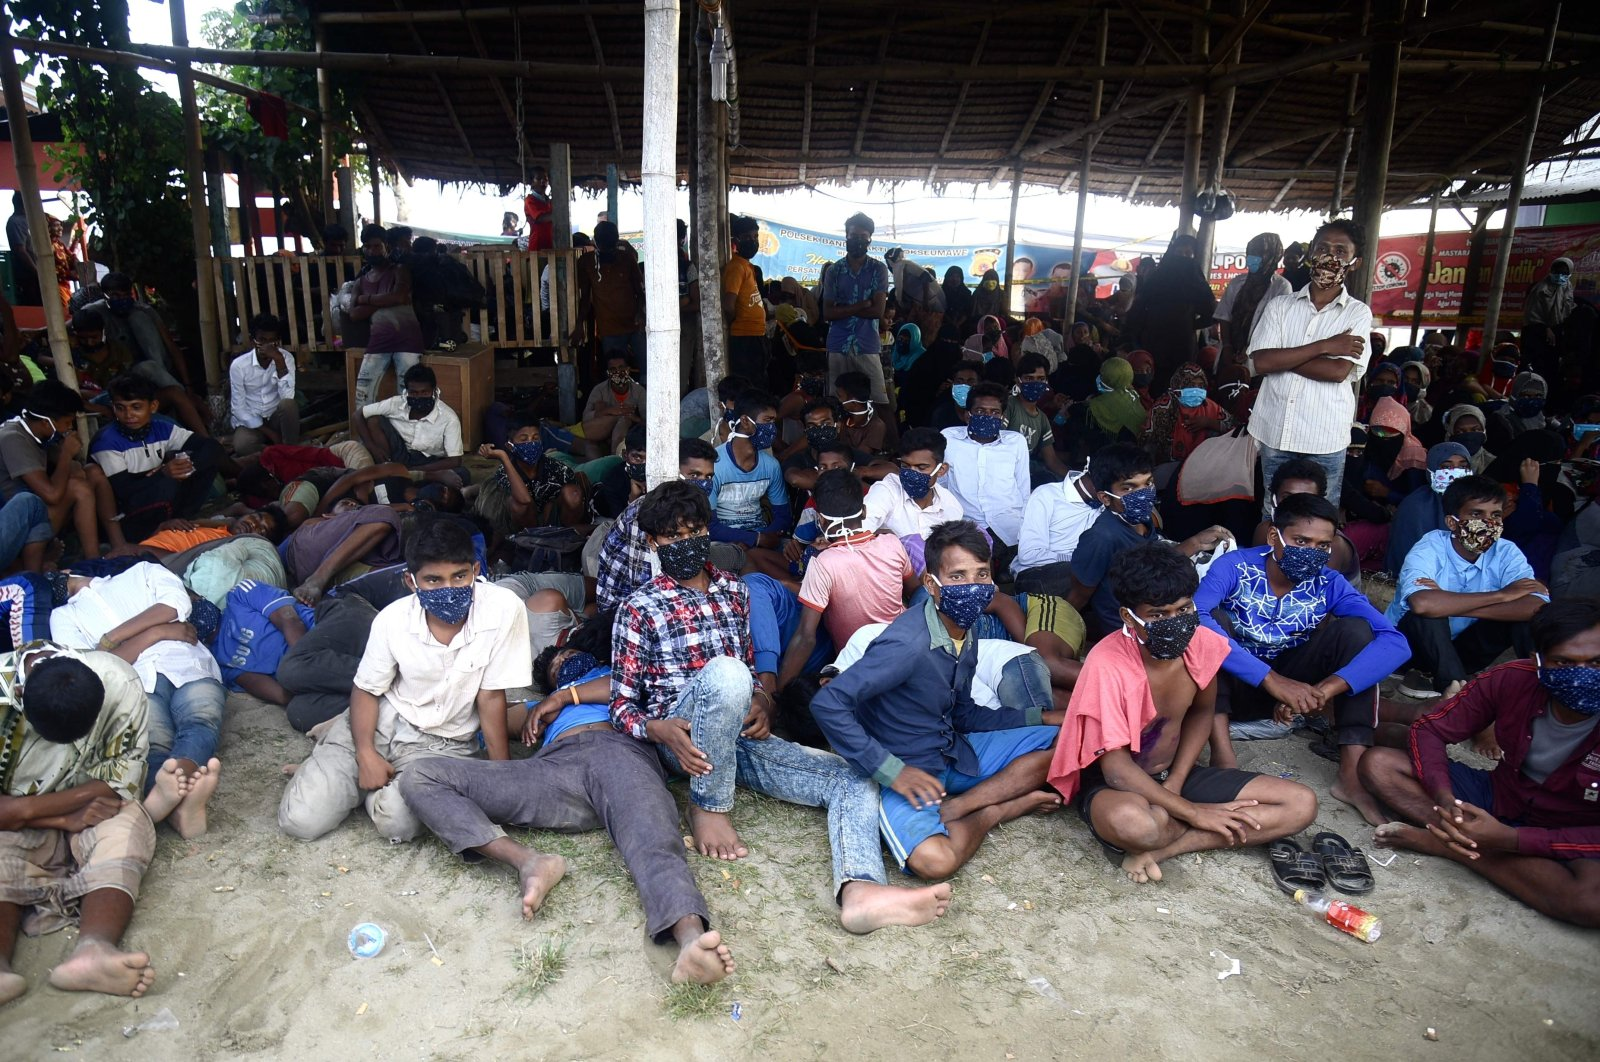 Rohingya migrants rest after their arrival by boat in Lhokseumawe, Sumatra, Indonesia, Sept. 7, 2020. (AFP Photo)